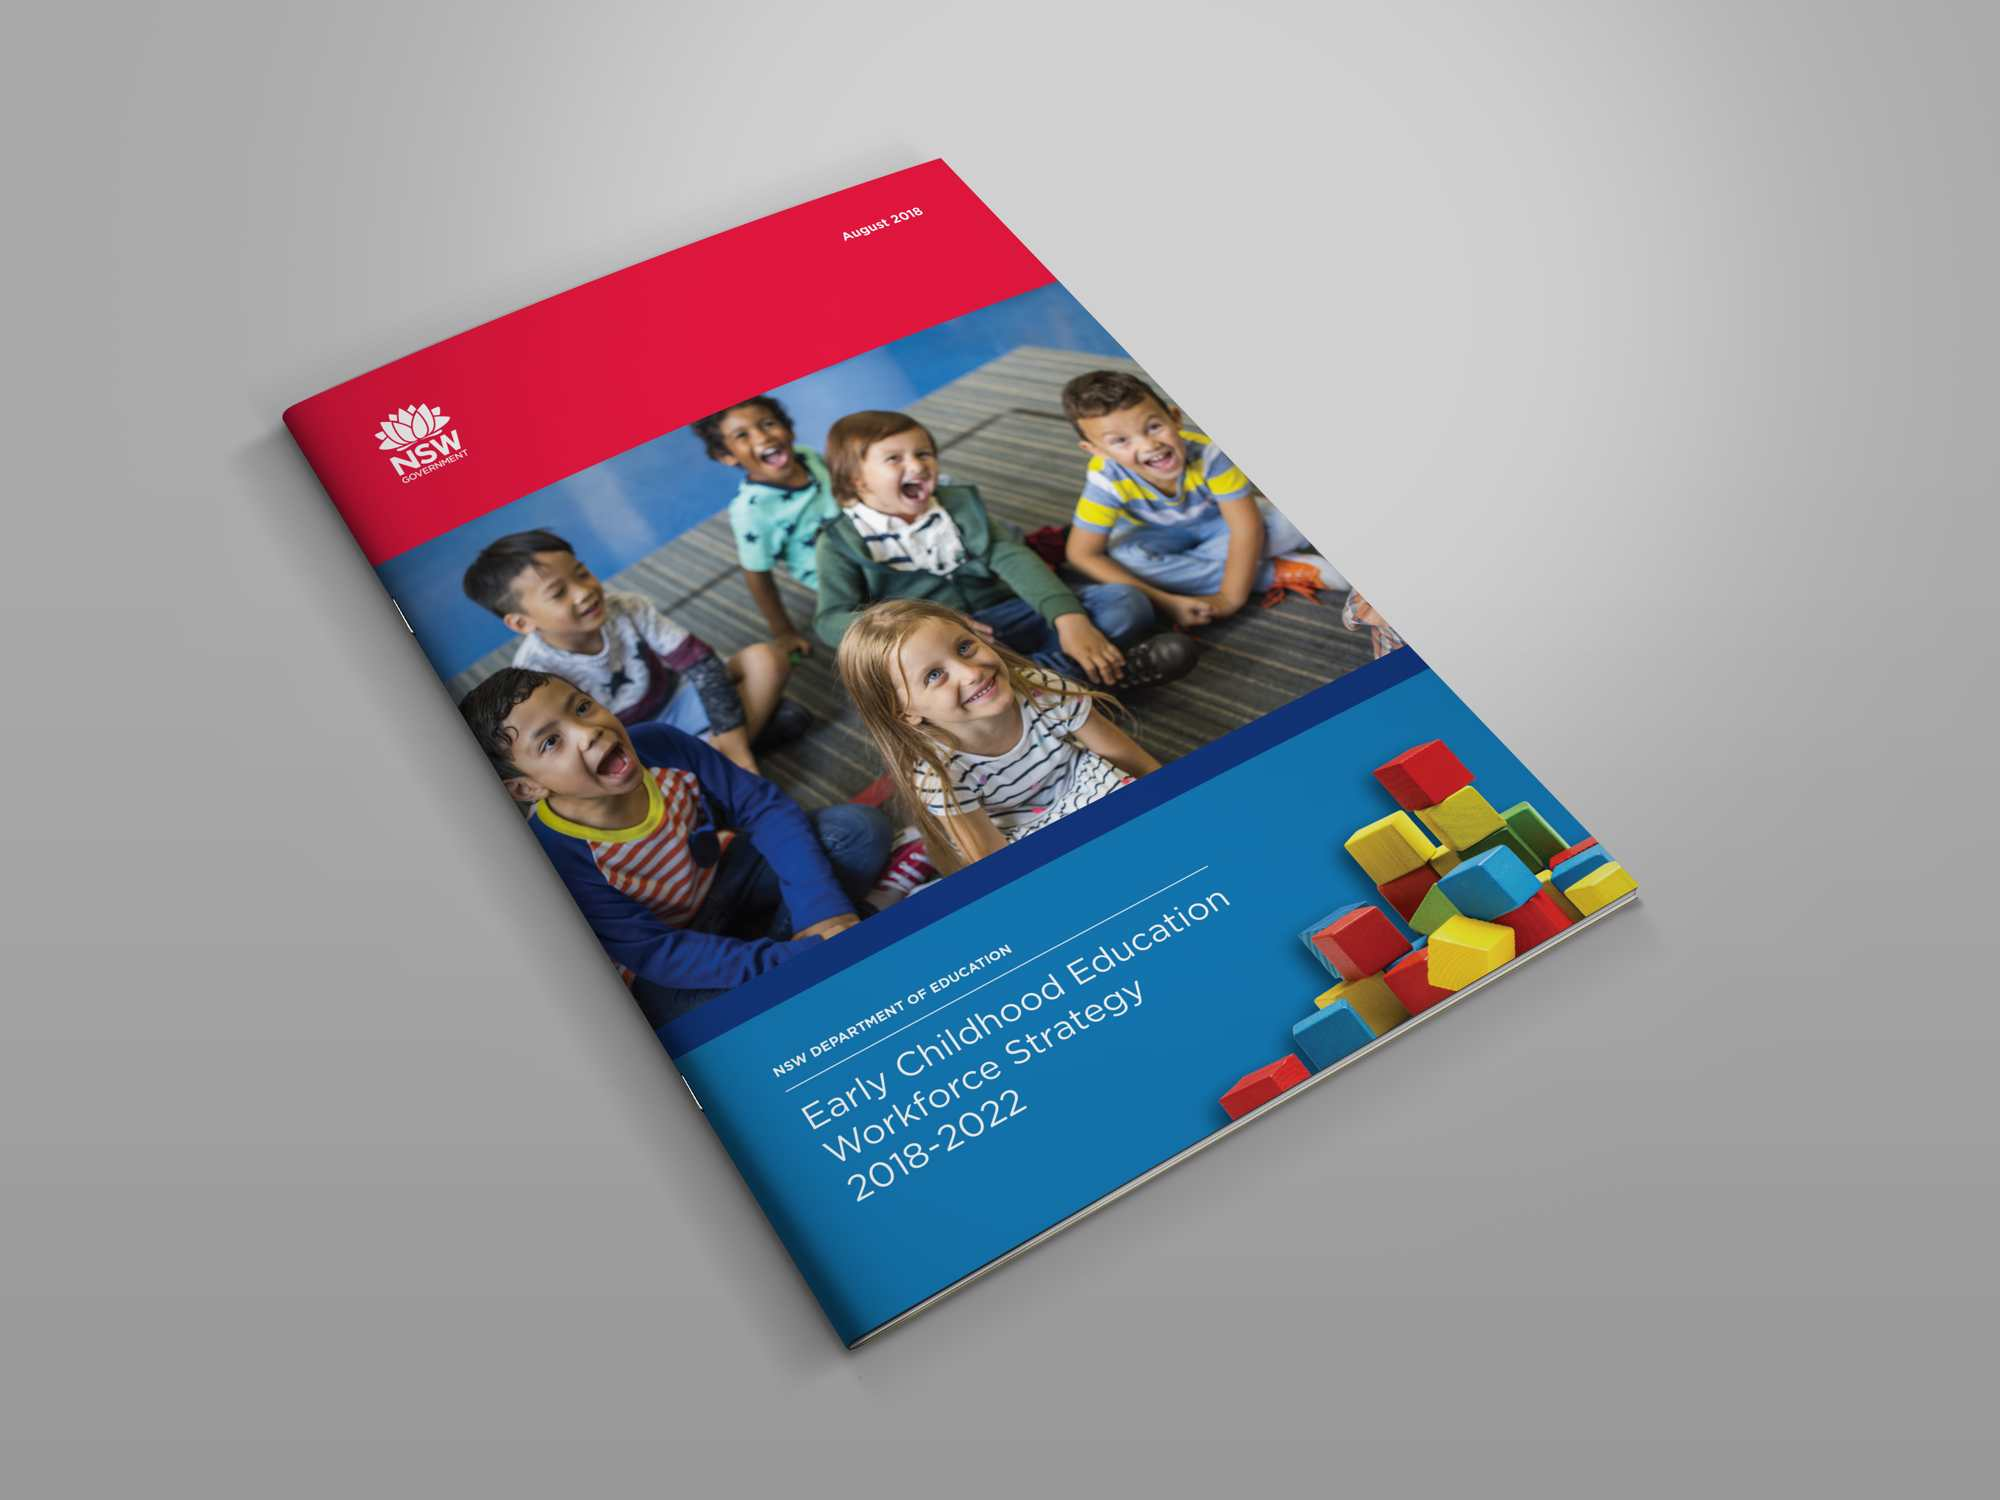 NSW Dept of Education brochure design by Think Creative & Print